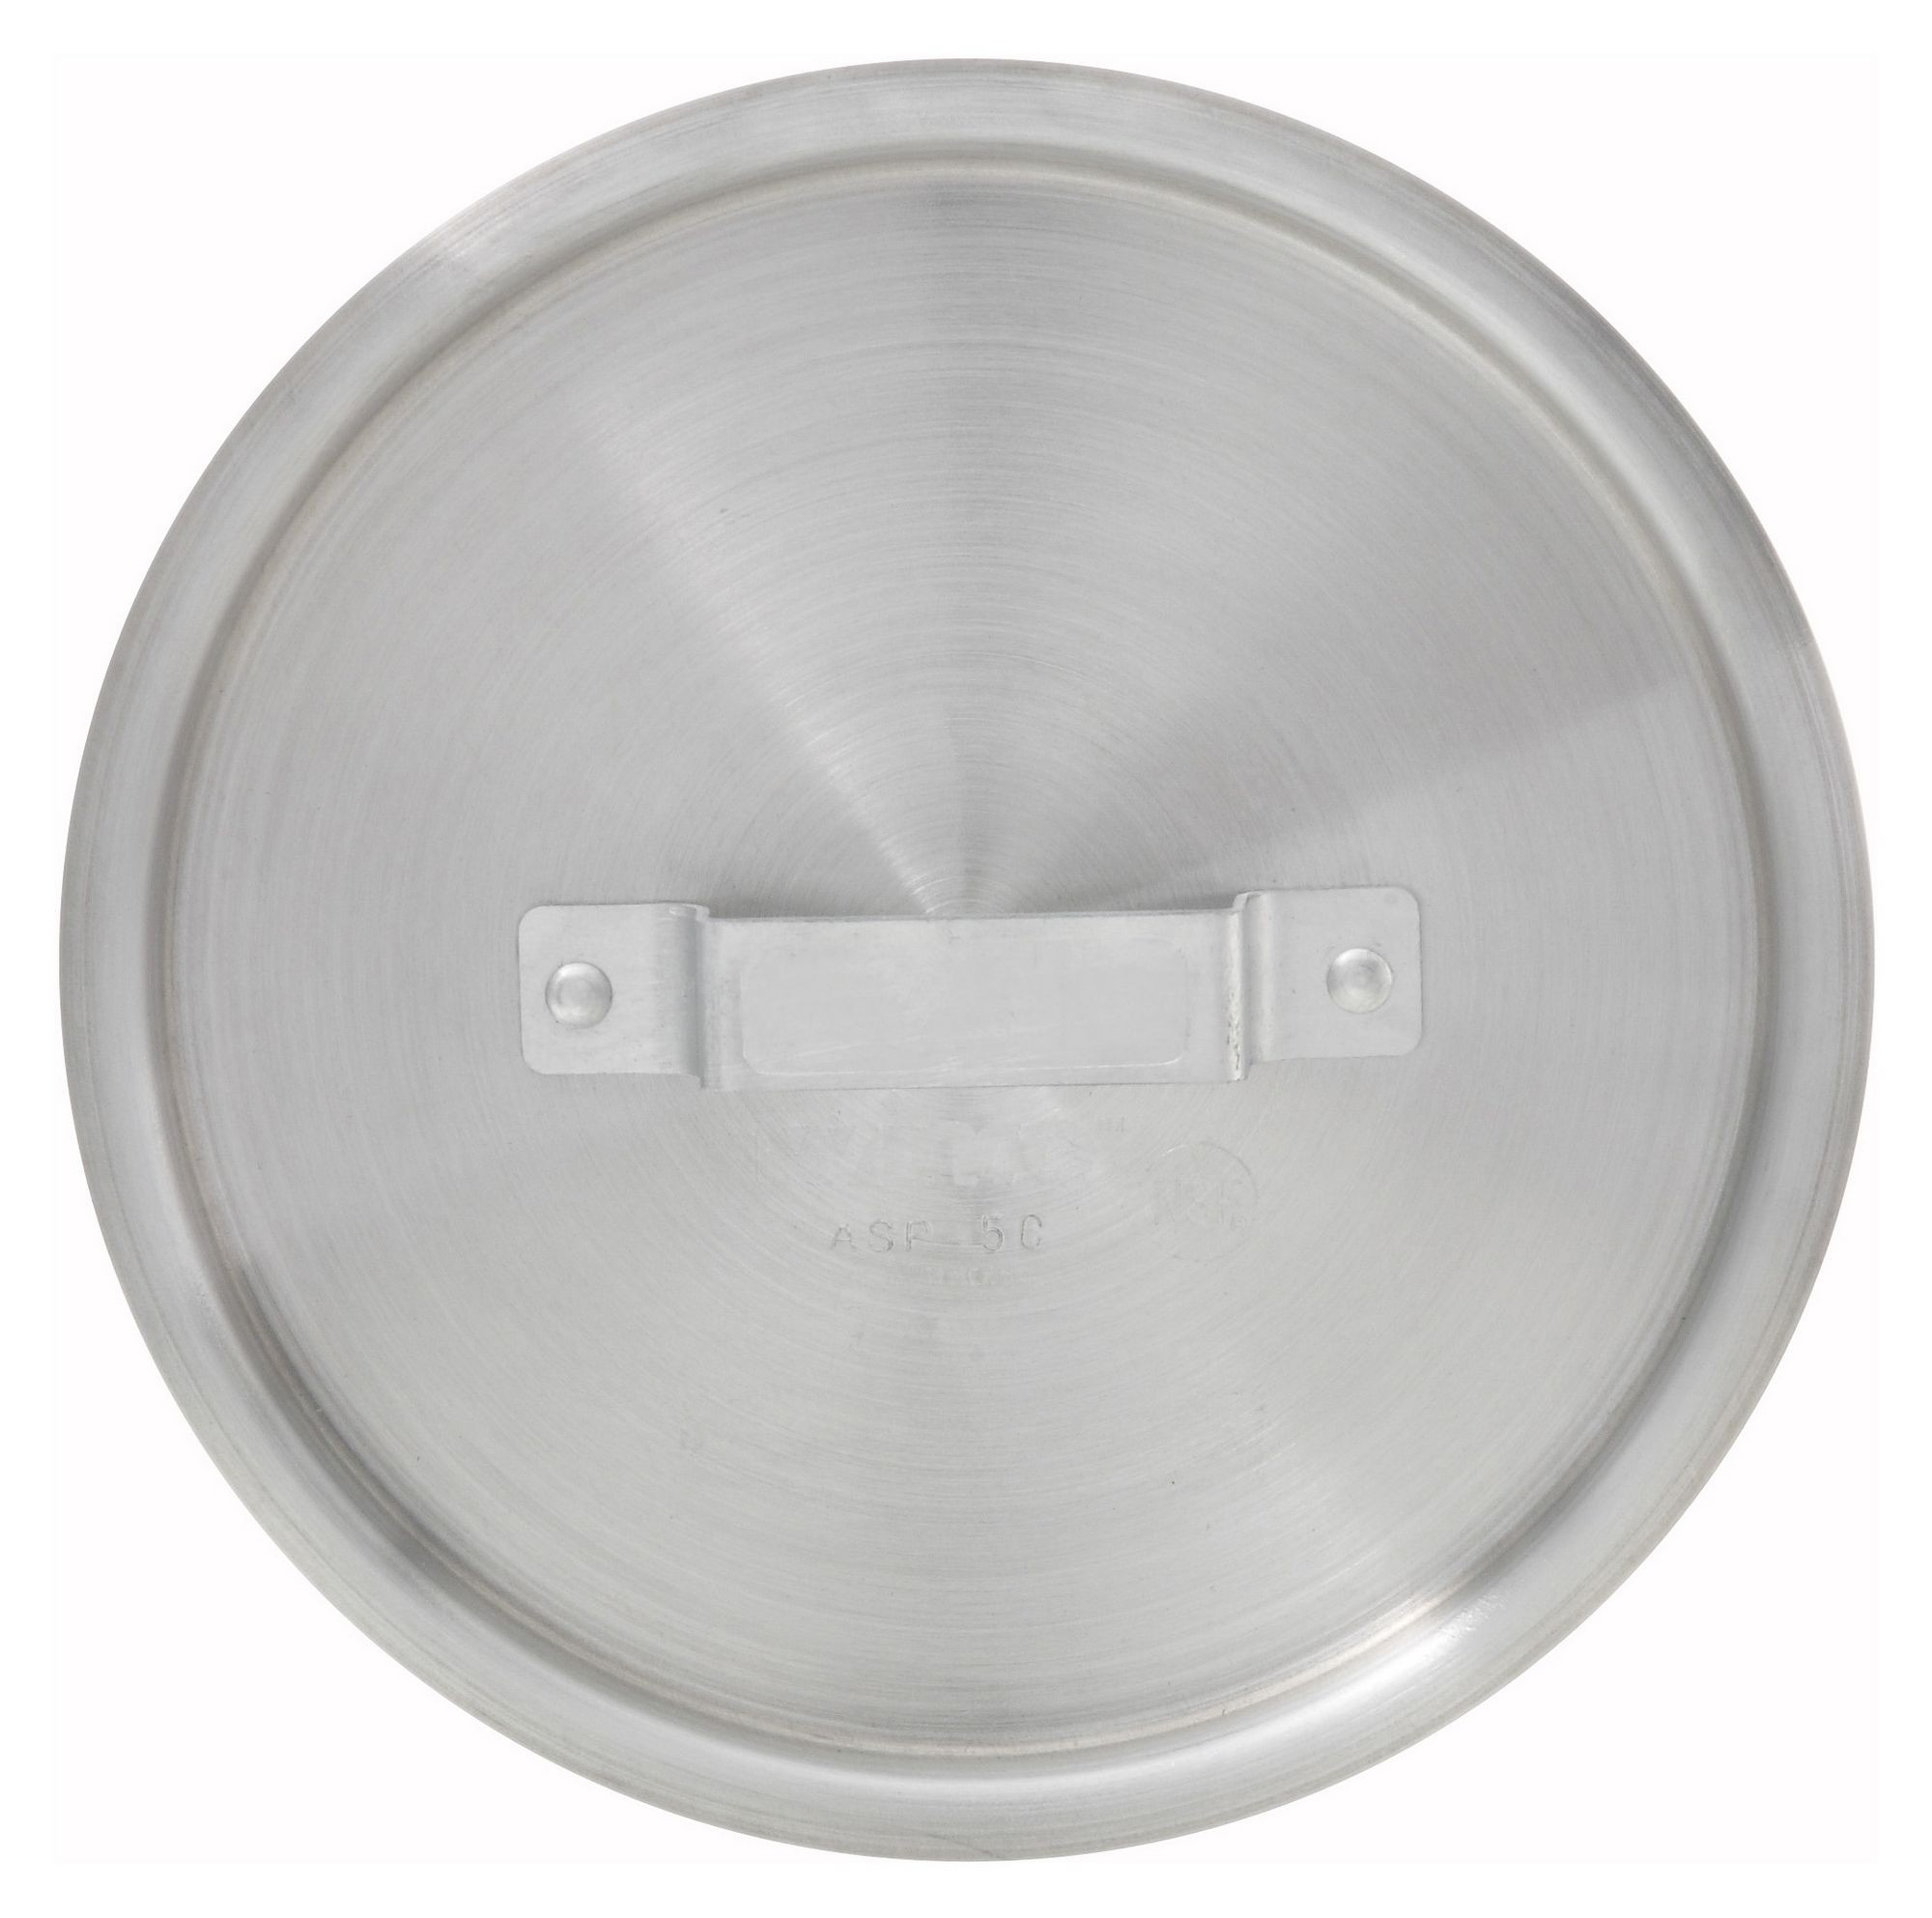 Winco ASP-2C Aluminum Cover for 2-1/2 Qt. Sauce Pan